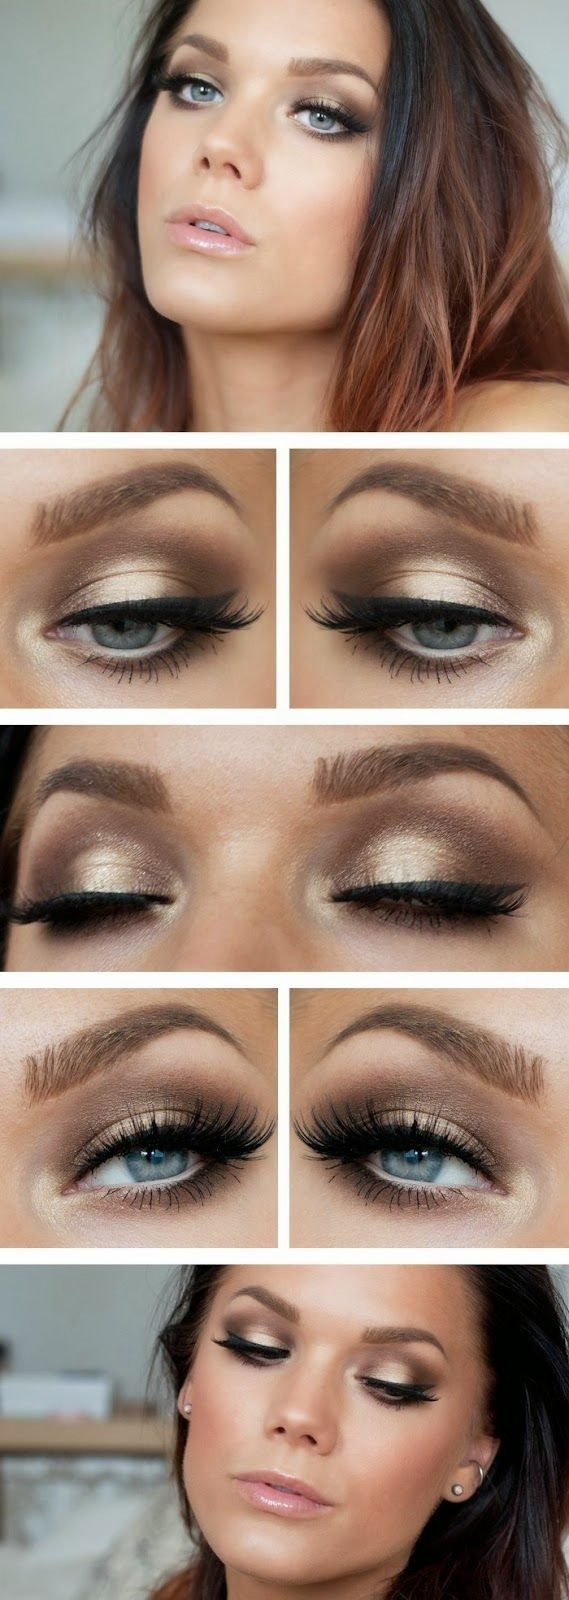 bronze wedding makeup best photos - wedding makeup  - cuteweddingideas.com